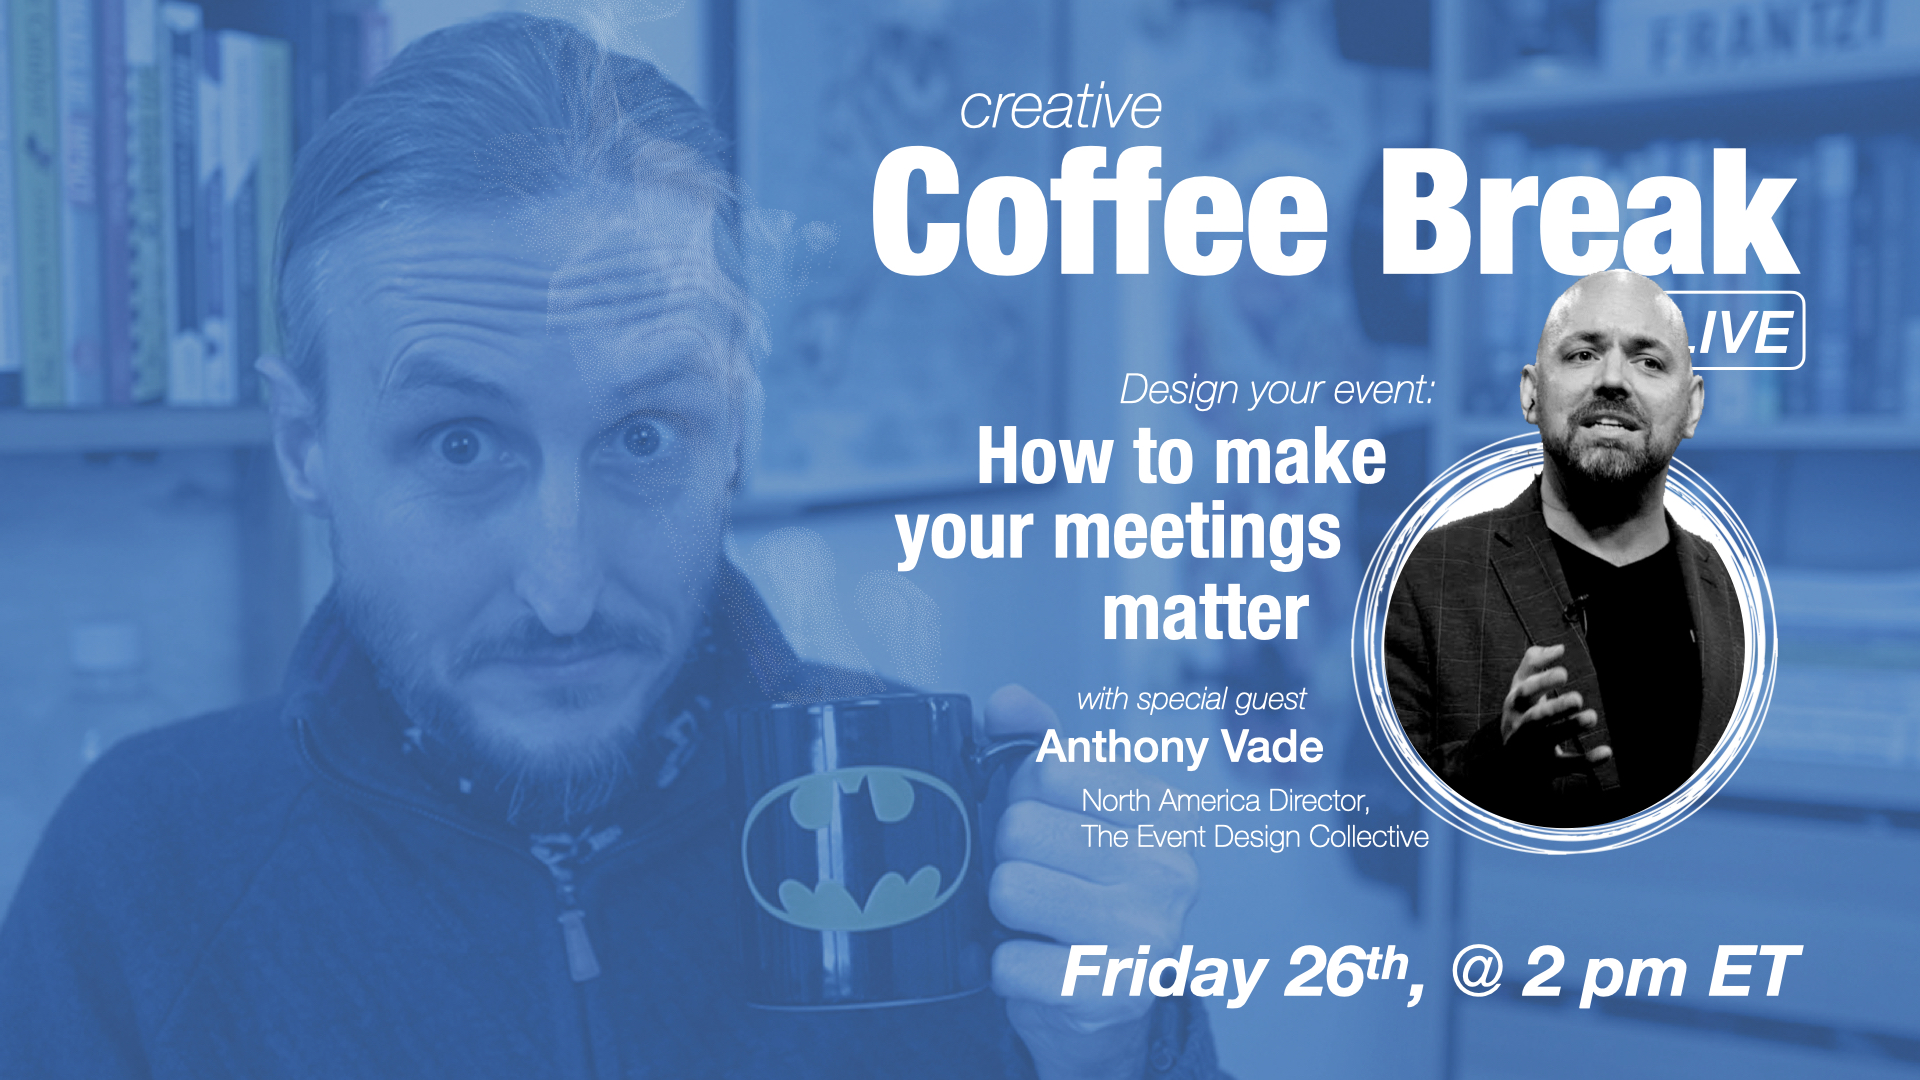 Design your event: How to make your meetings matter